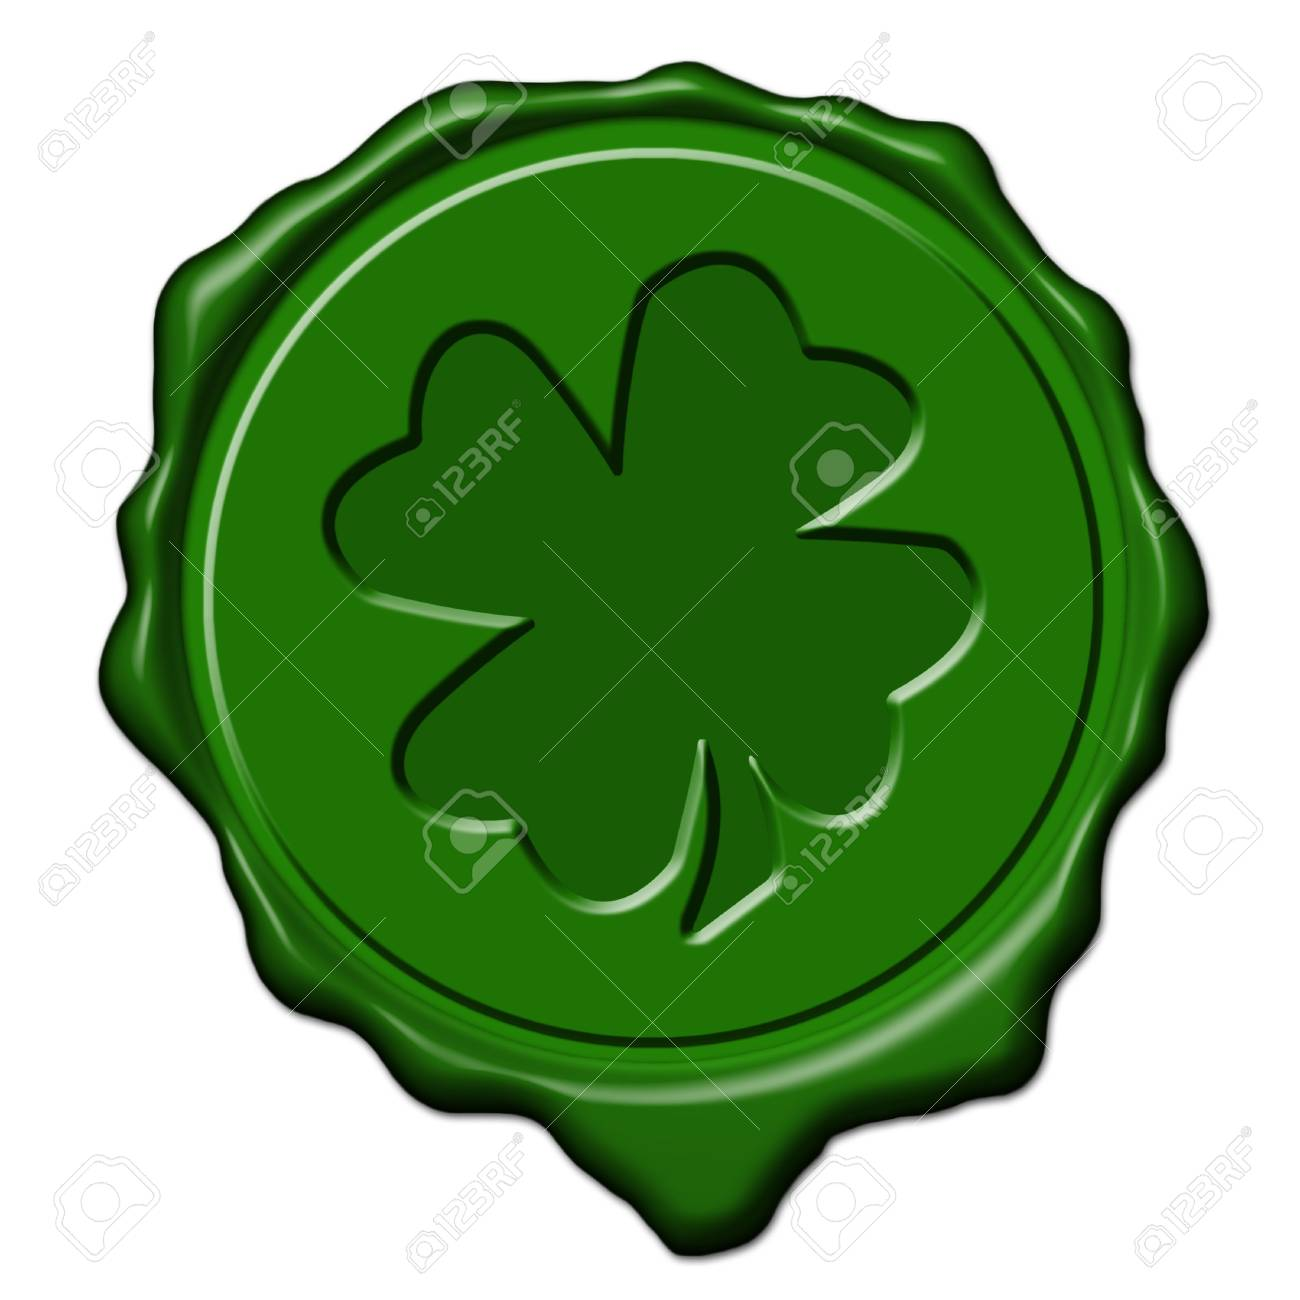 Green saint patrick's shamrock wax seal used to sign and close letters Stock Photo - 2672670